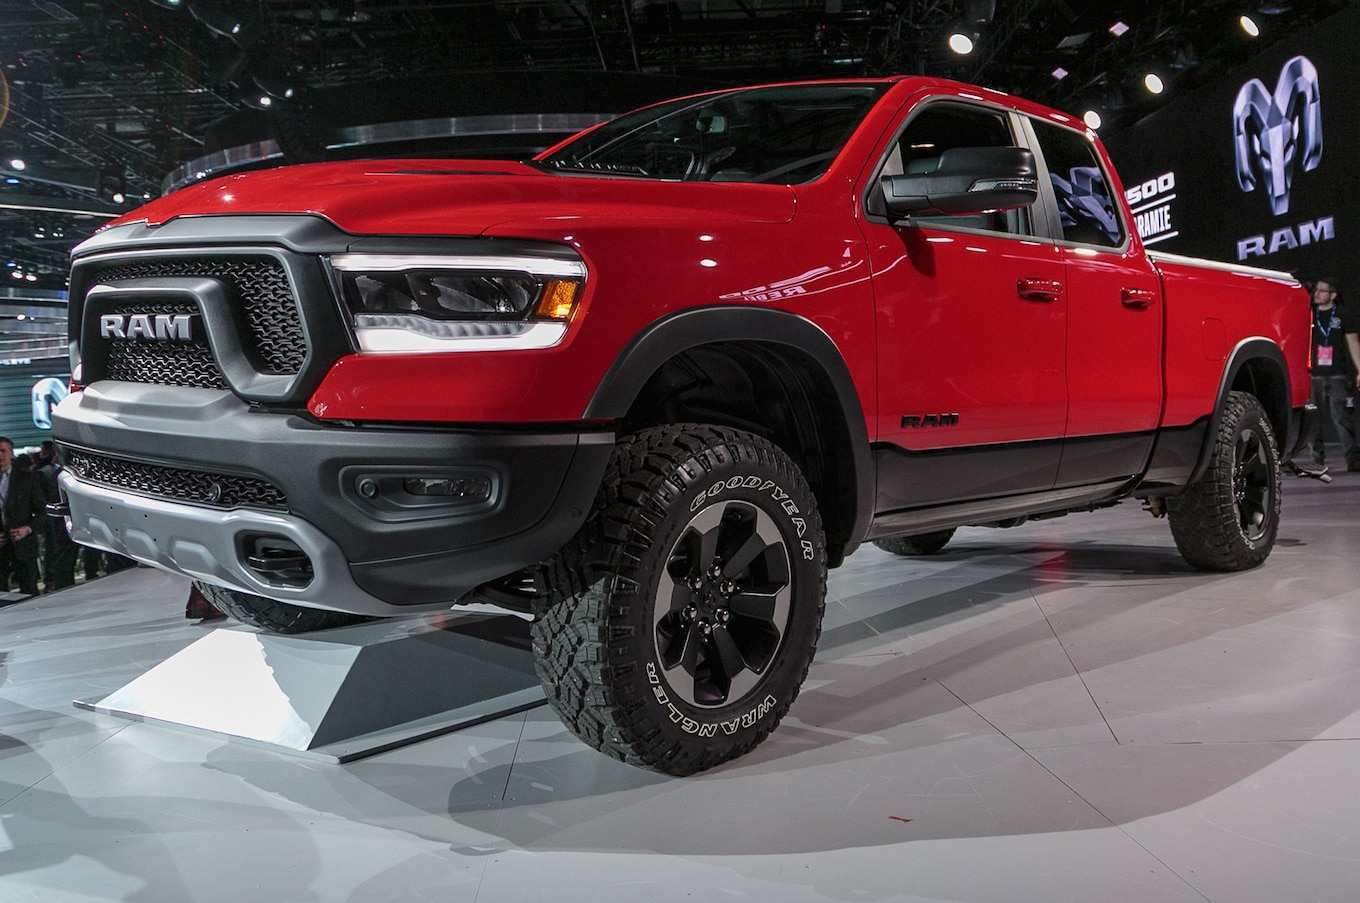 83 Best Review New Dodge Ram 2019 Quad Cab Redesign And Concept Engine with New Dodge Ram 2019 Quad Cab Redesign And Concept